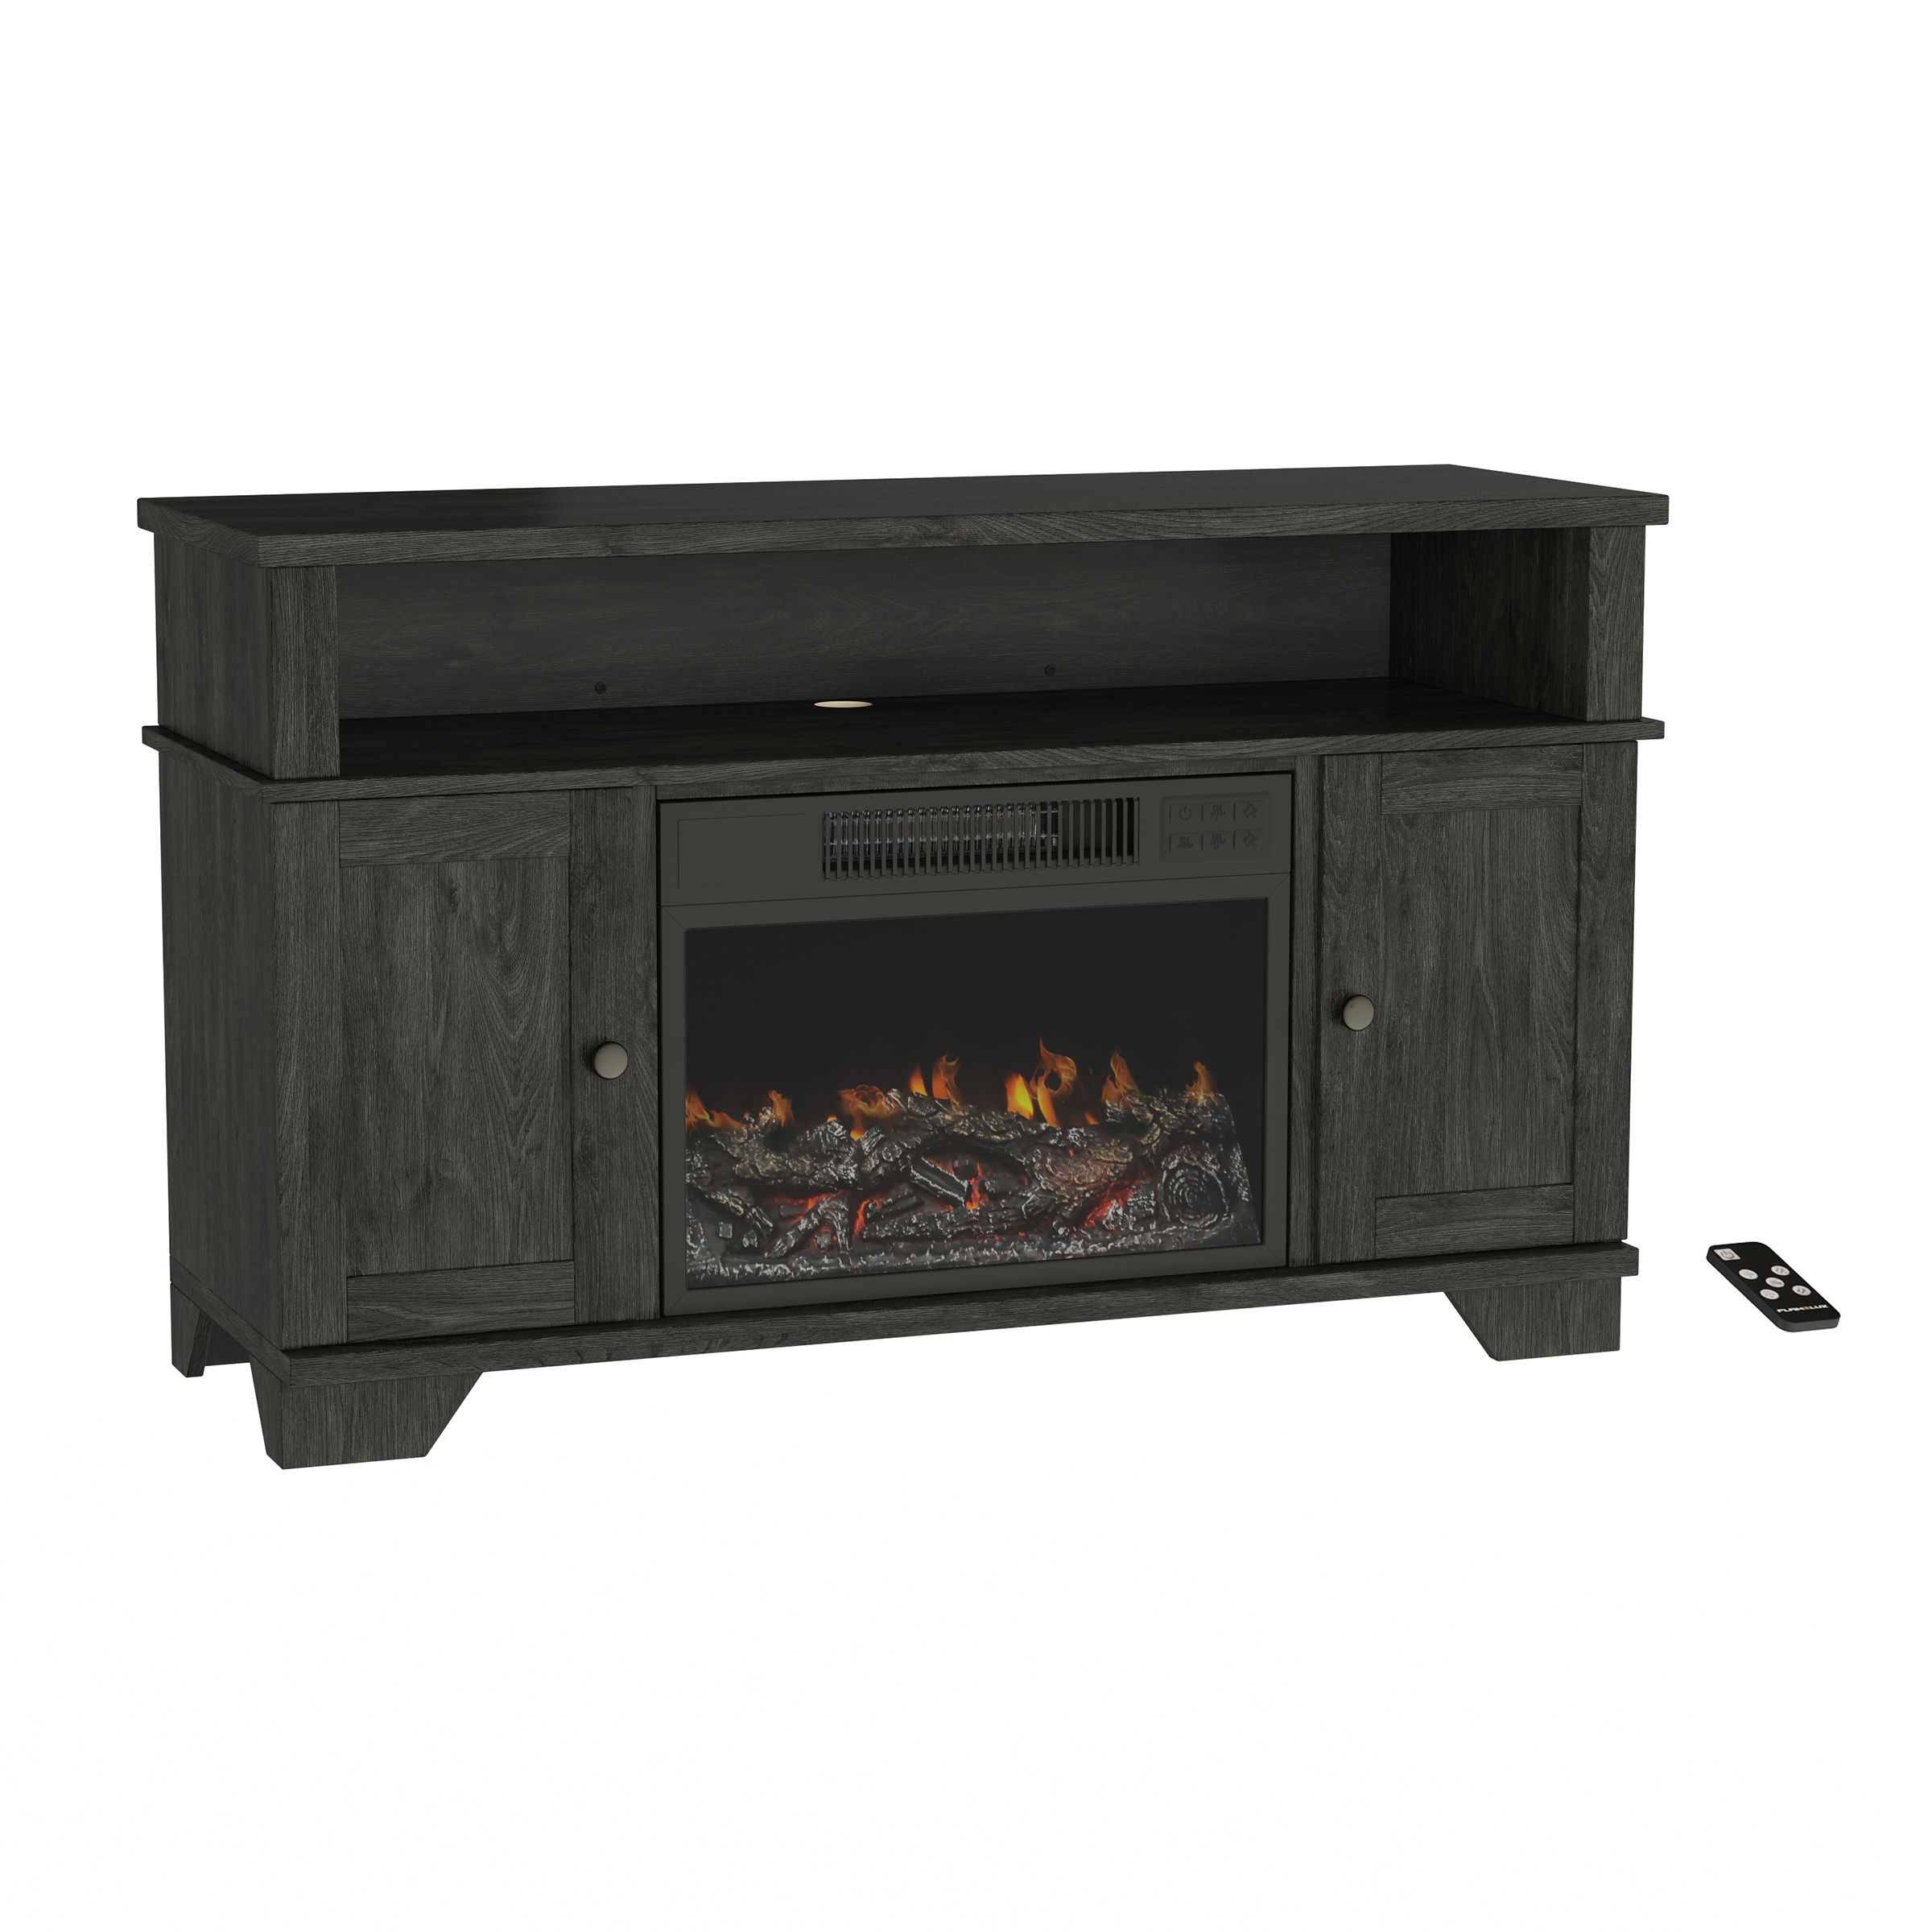 Northwest Electric Fireplace TV Stand with Storage   fits tv up to 20